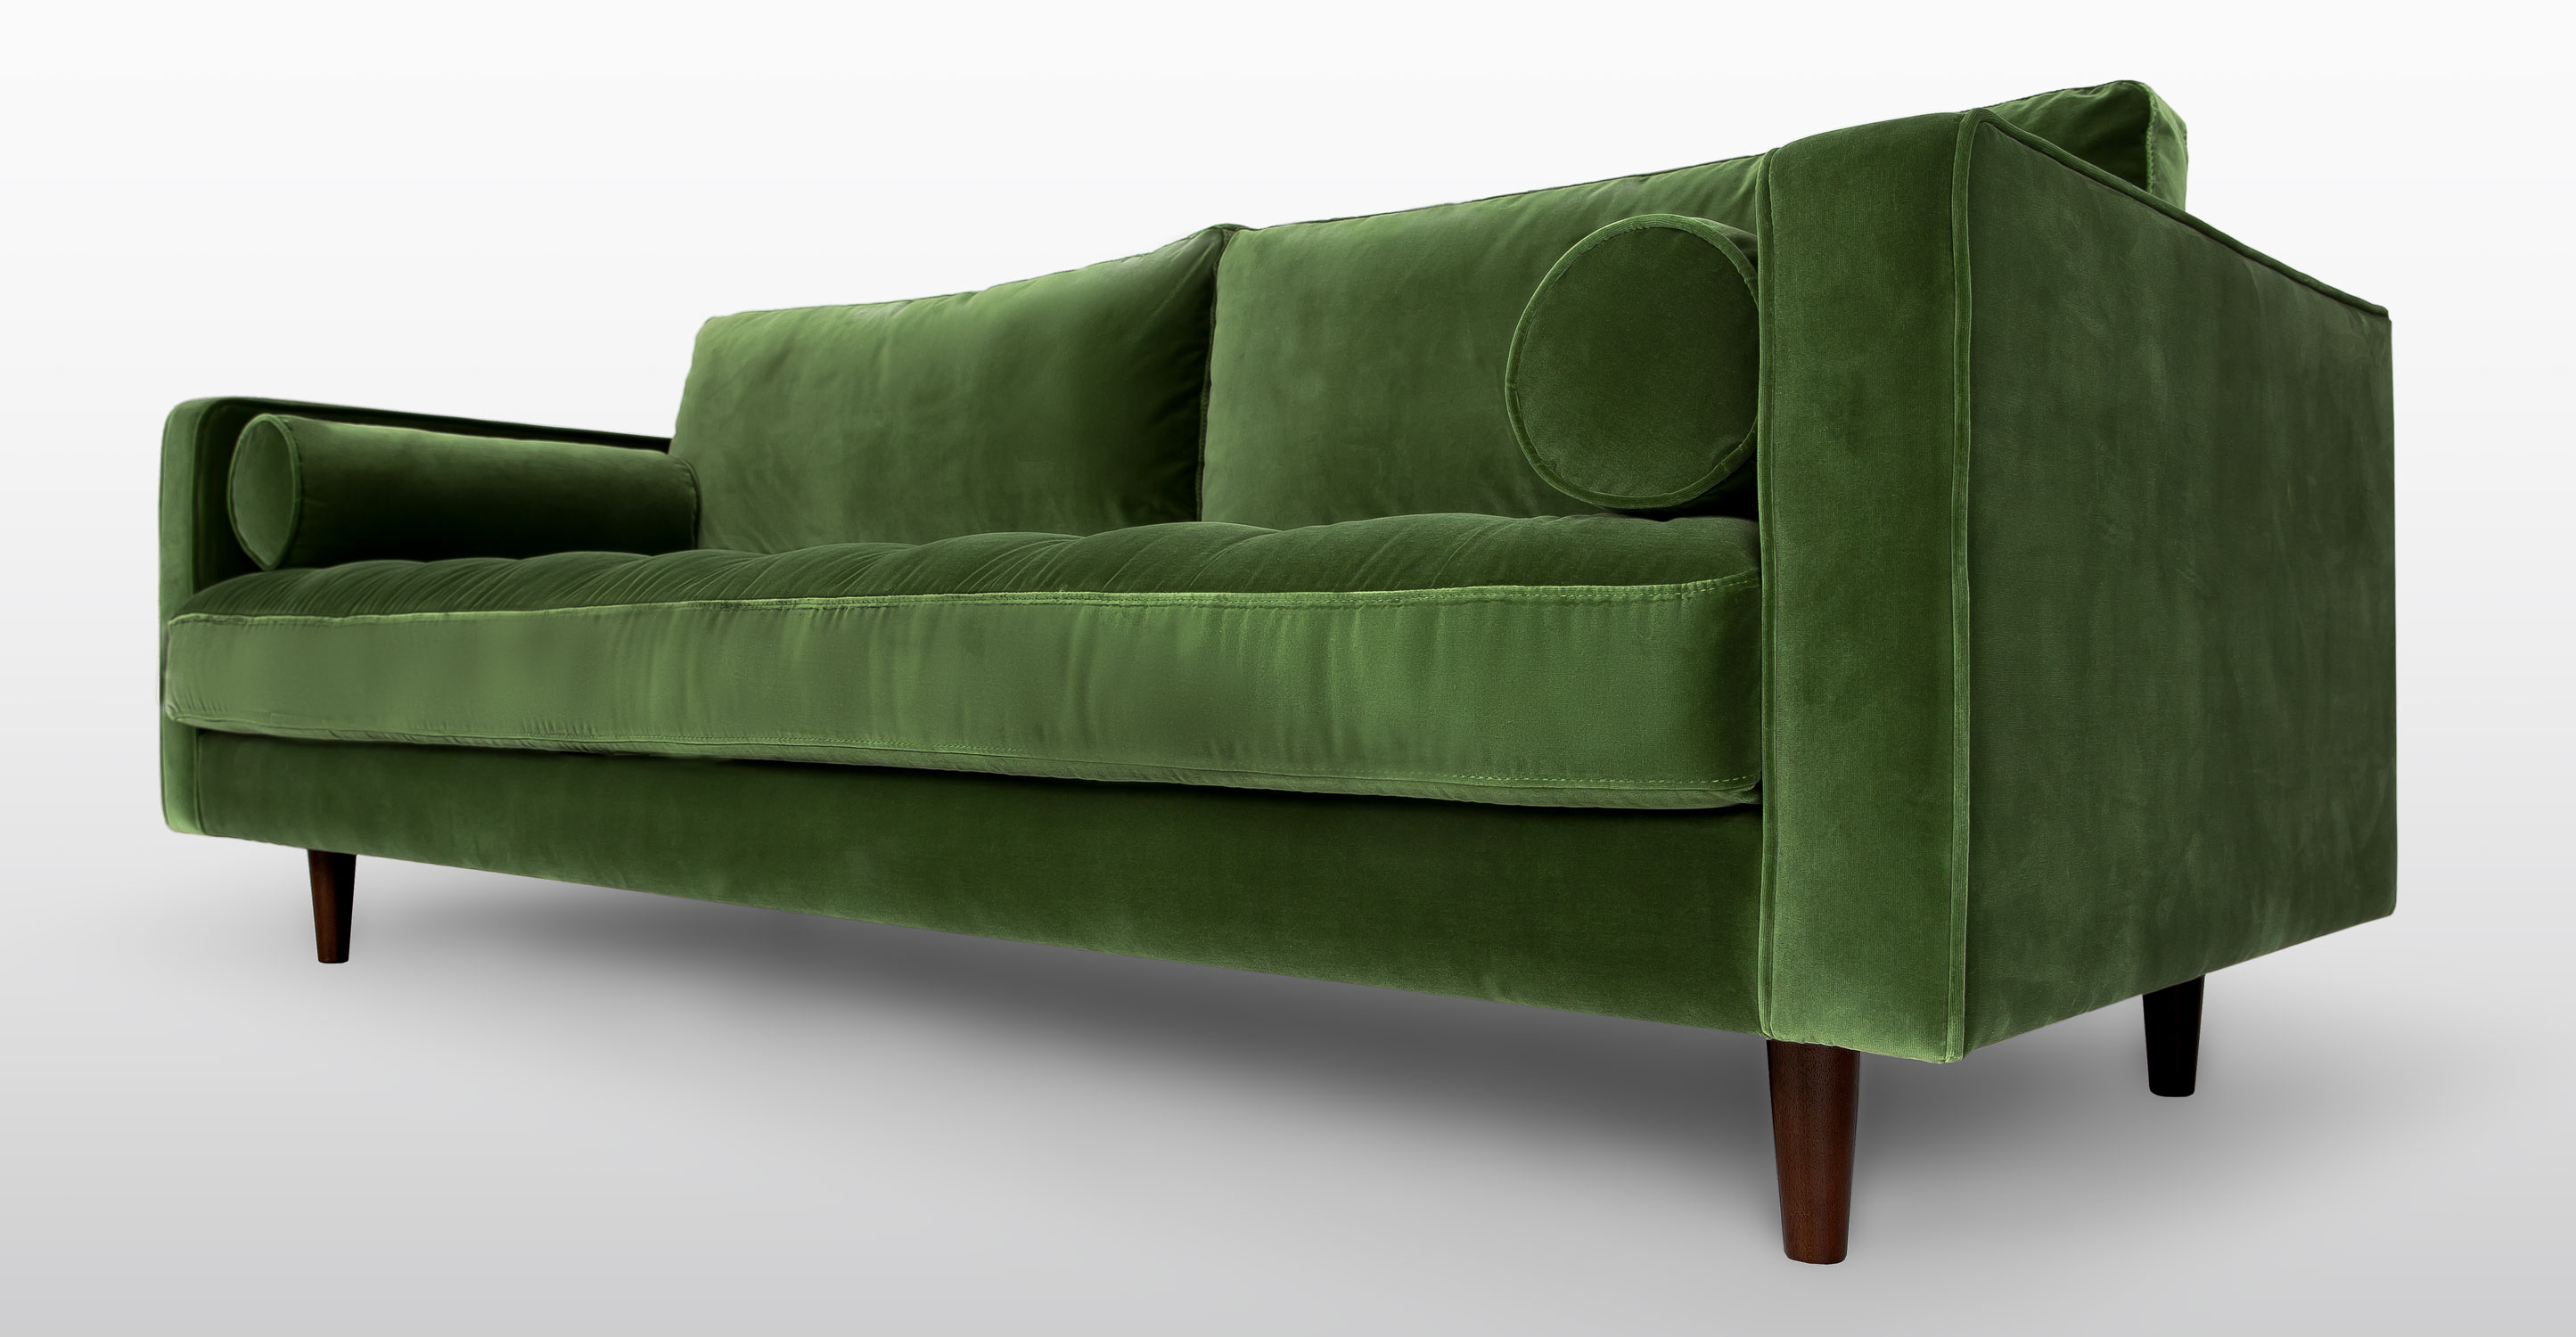 Green Settee 11 Pieces Of 3970s Decor To Give Your Home The Grooviest